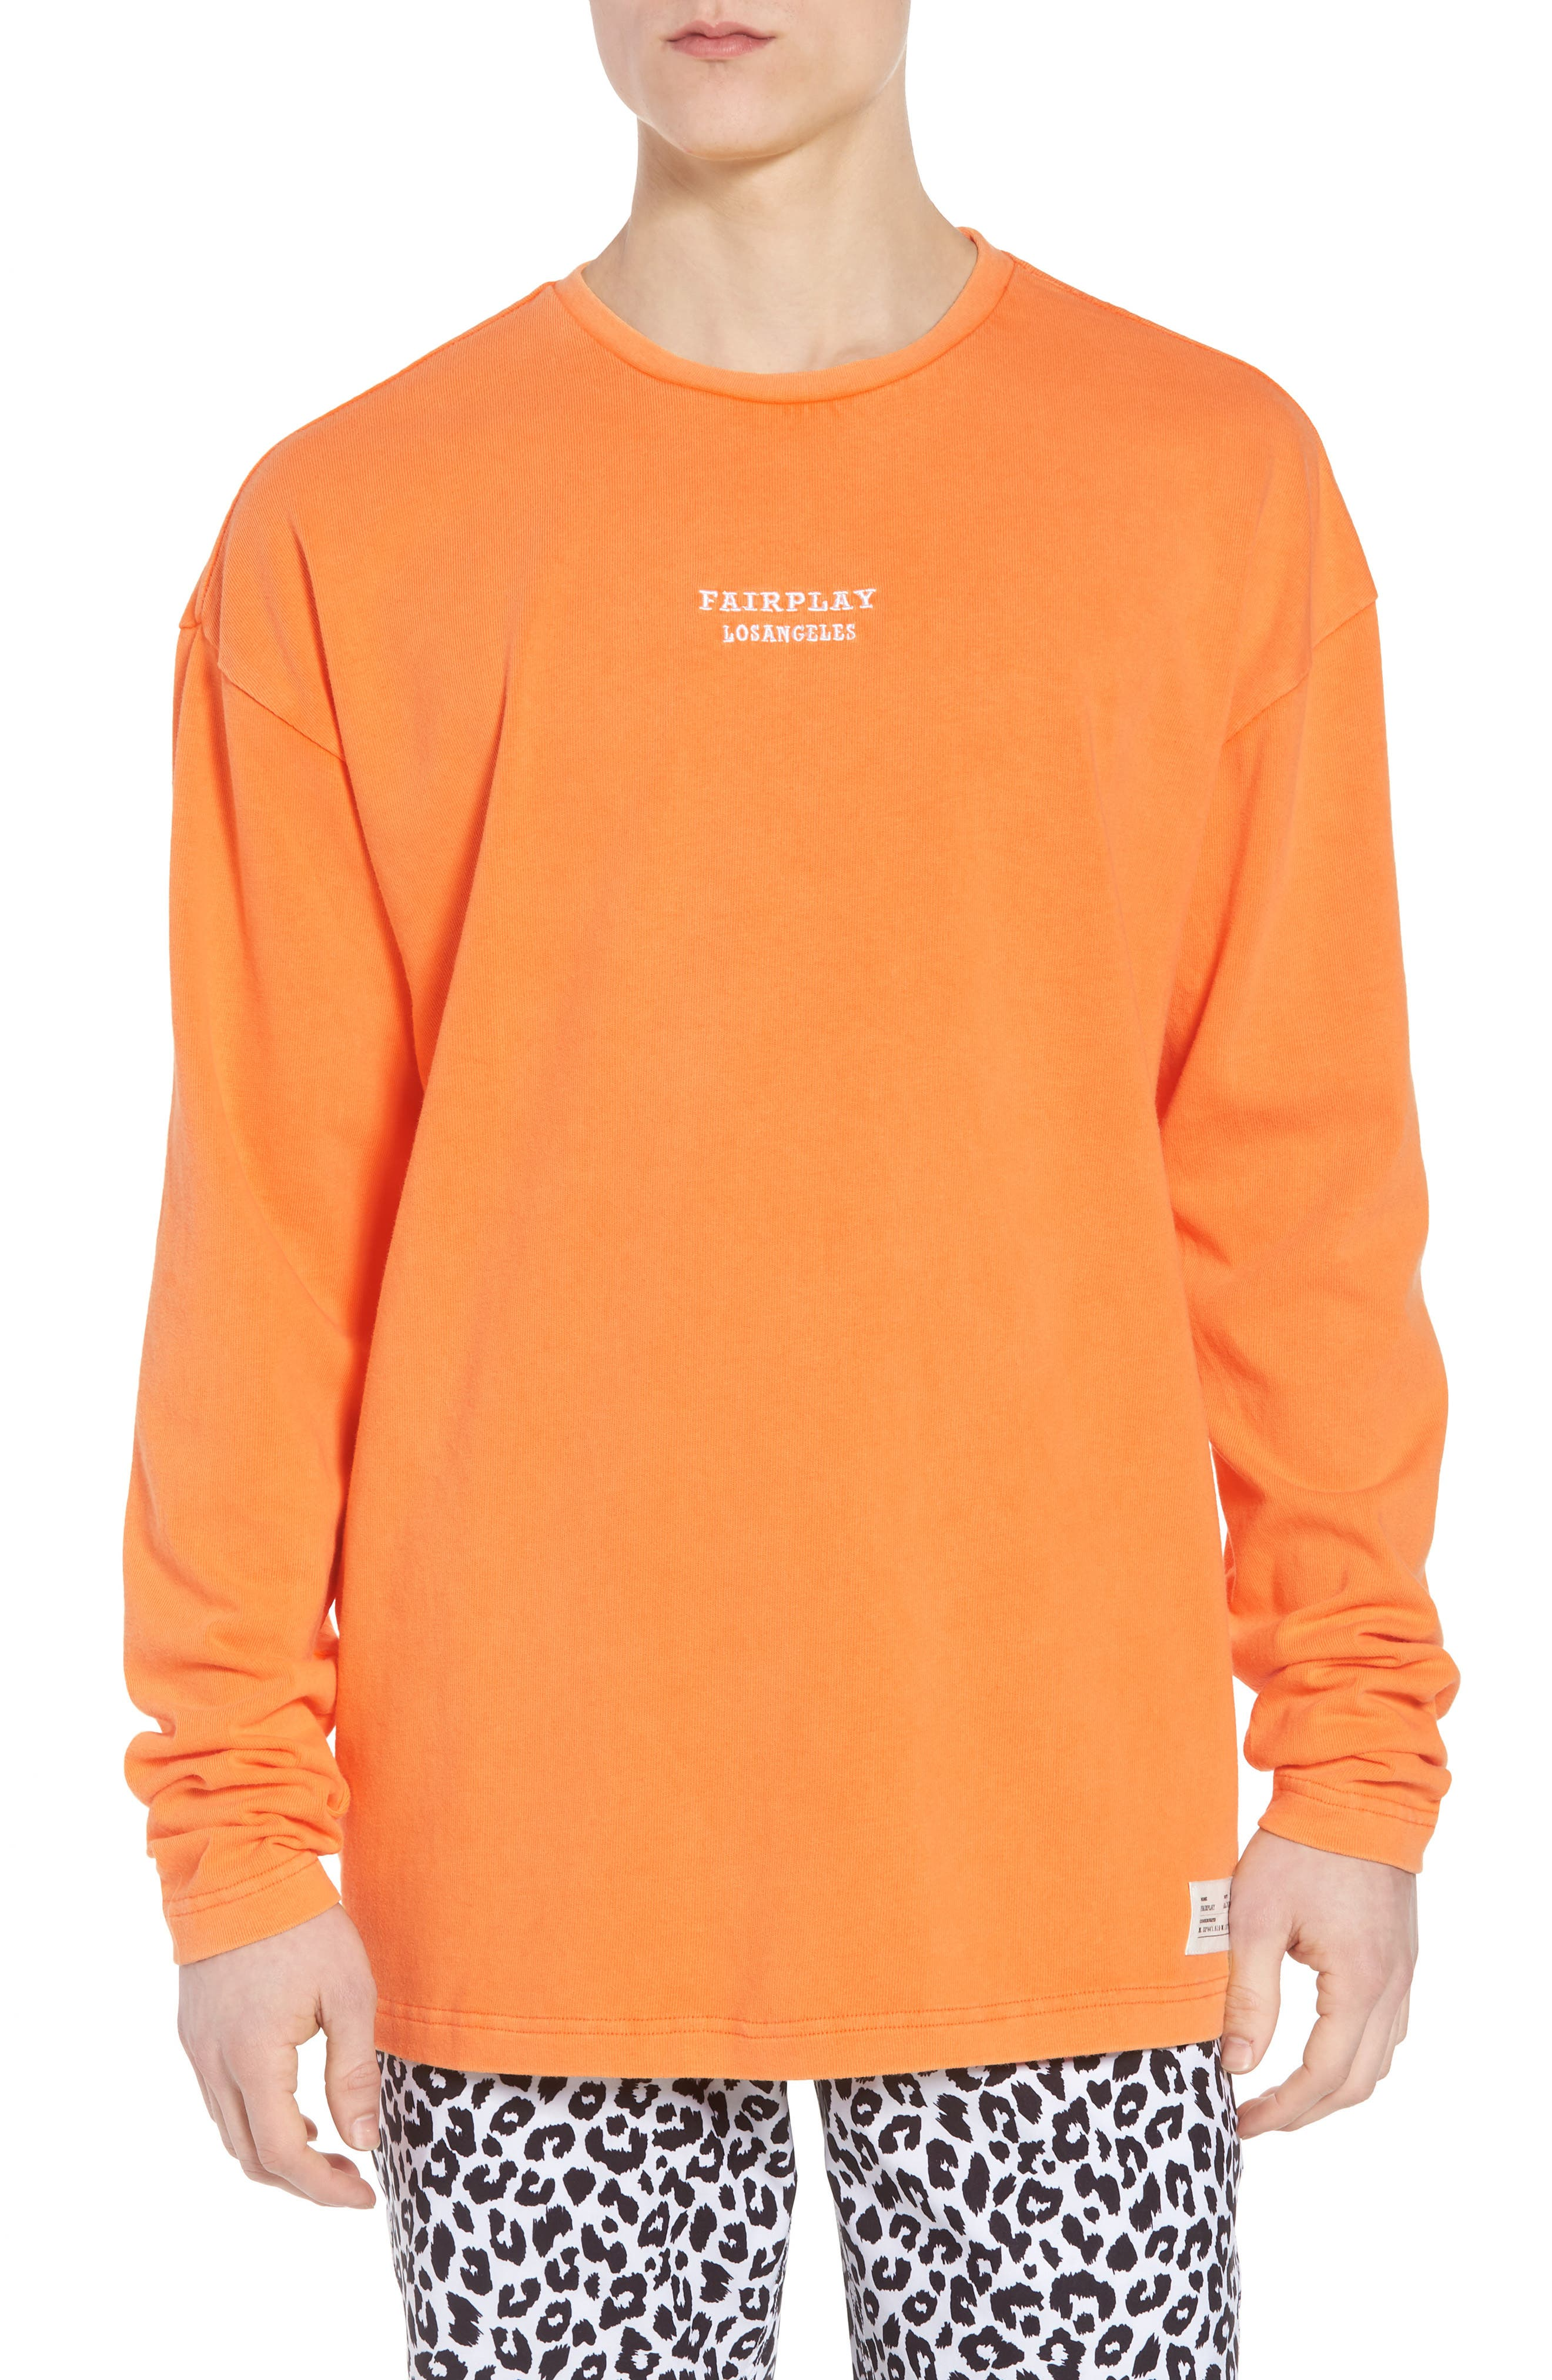 Anderson Sweatshirt,                         Main,                         color, Orange